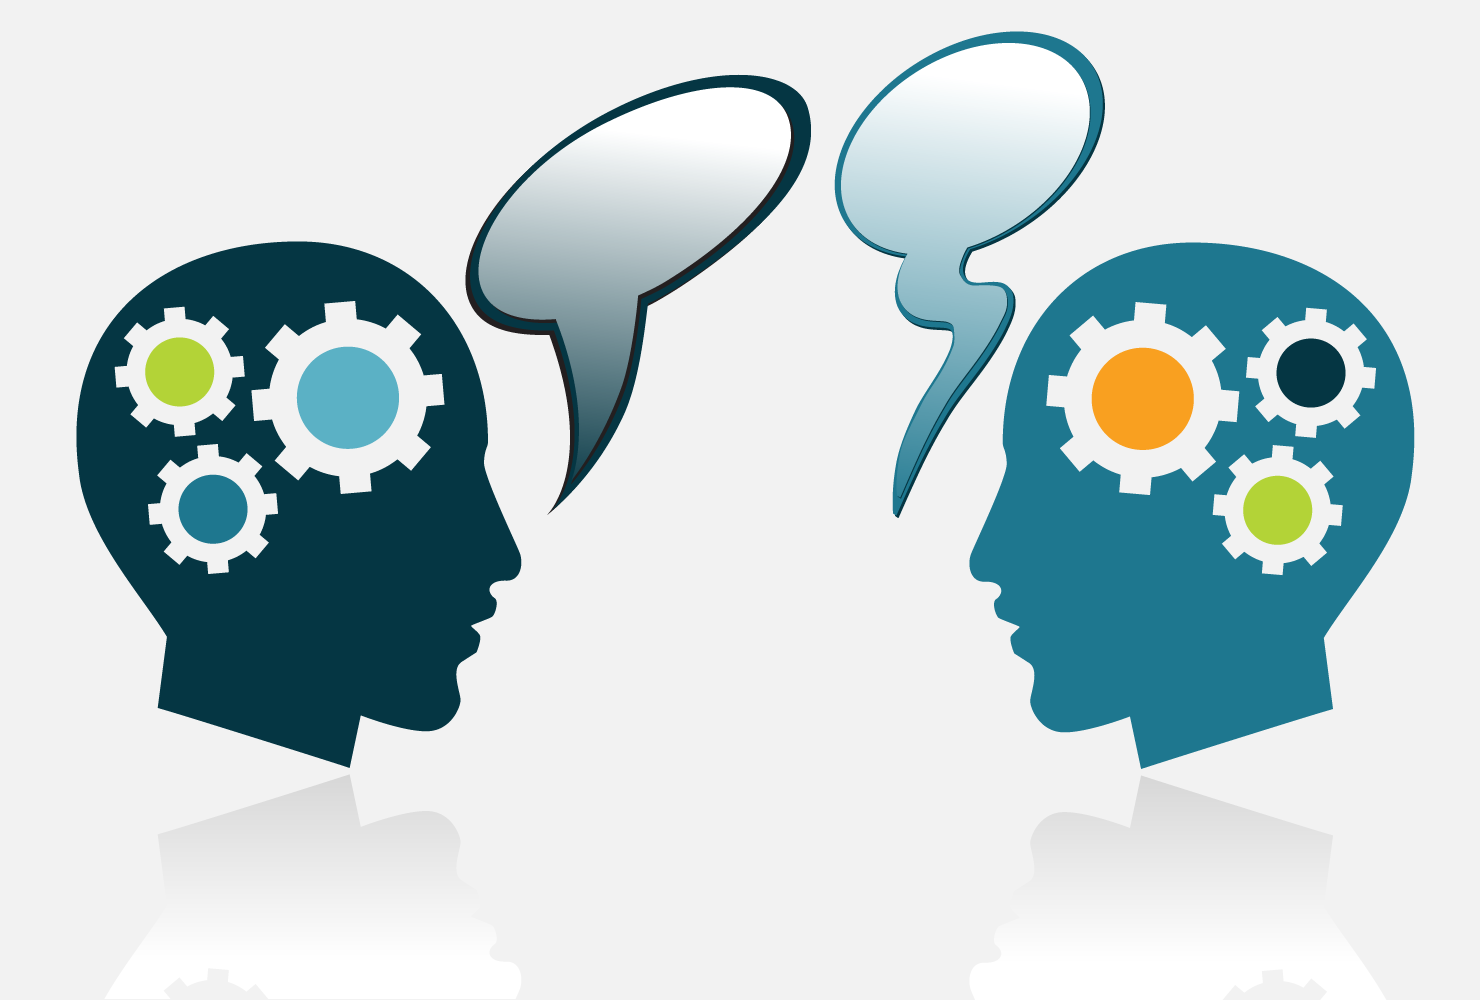 two heads with cogs and space bubbles indicating having a conversation